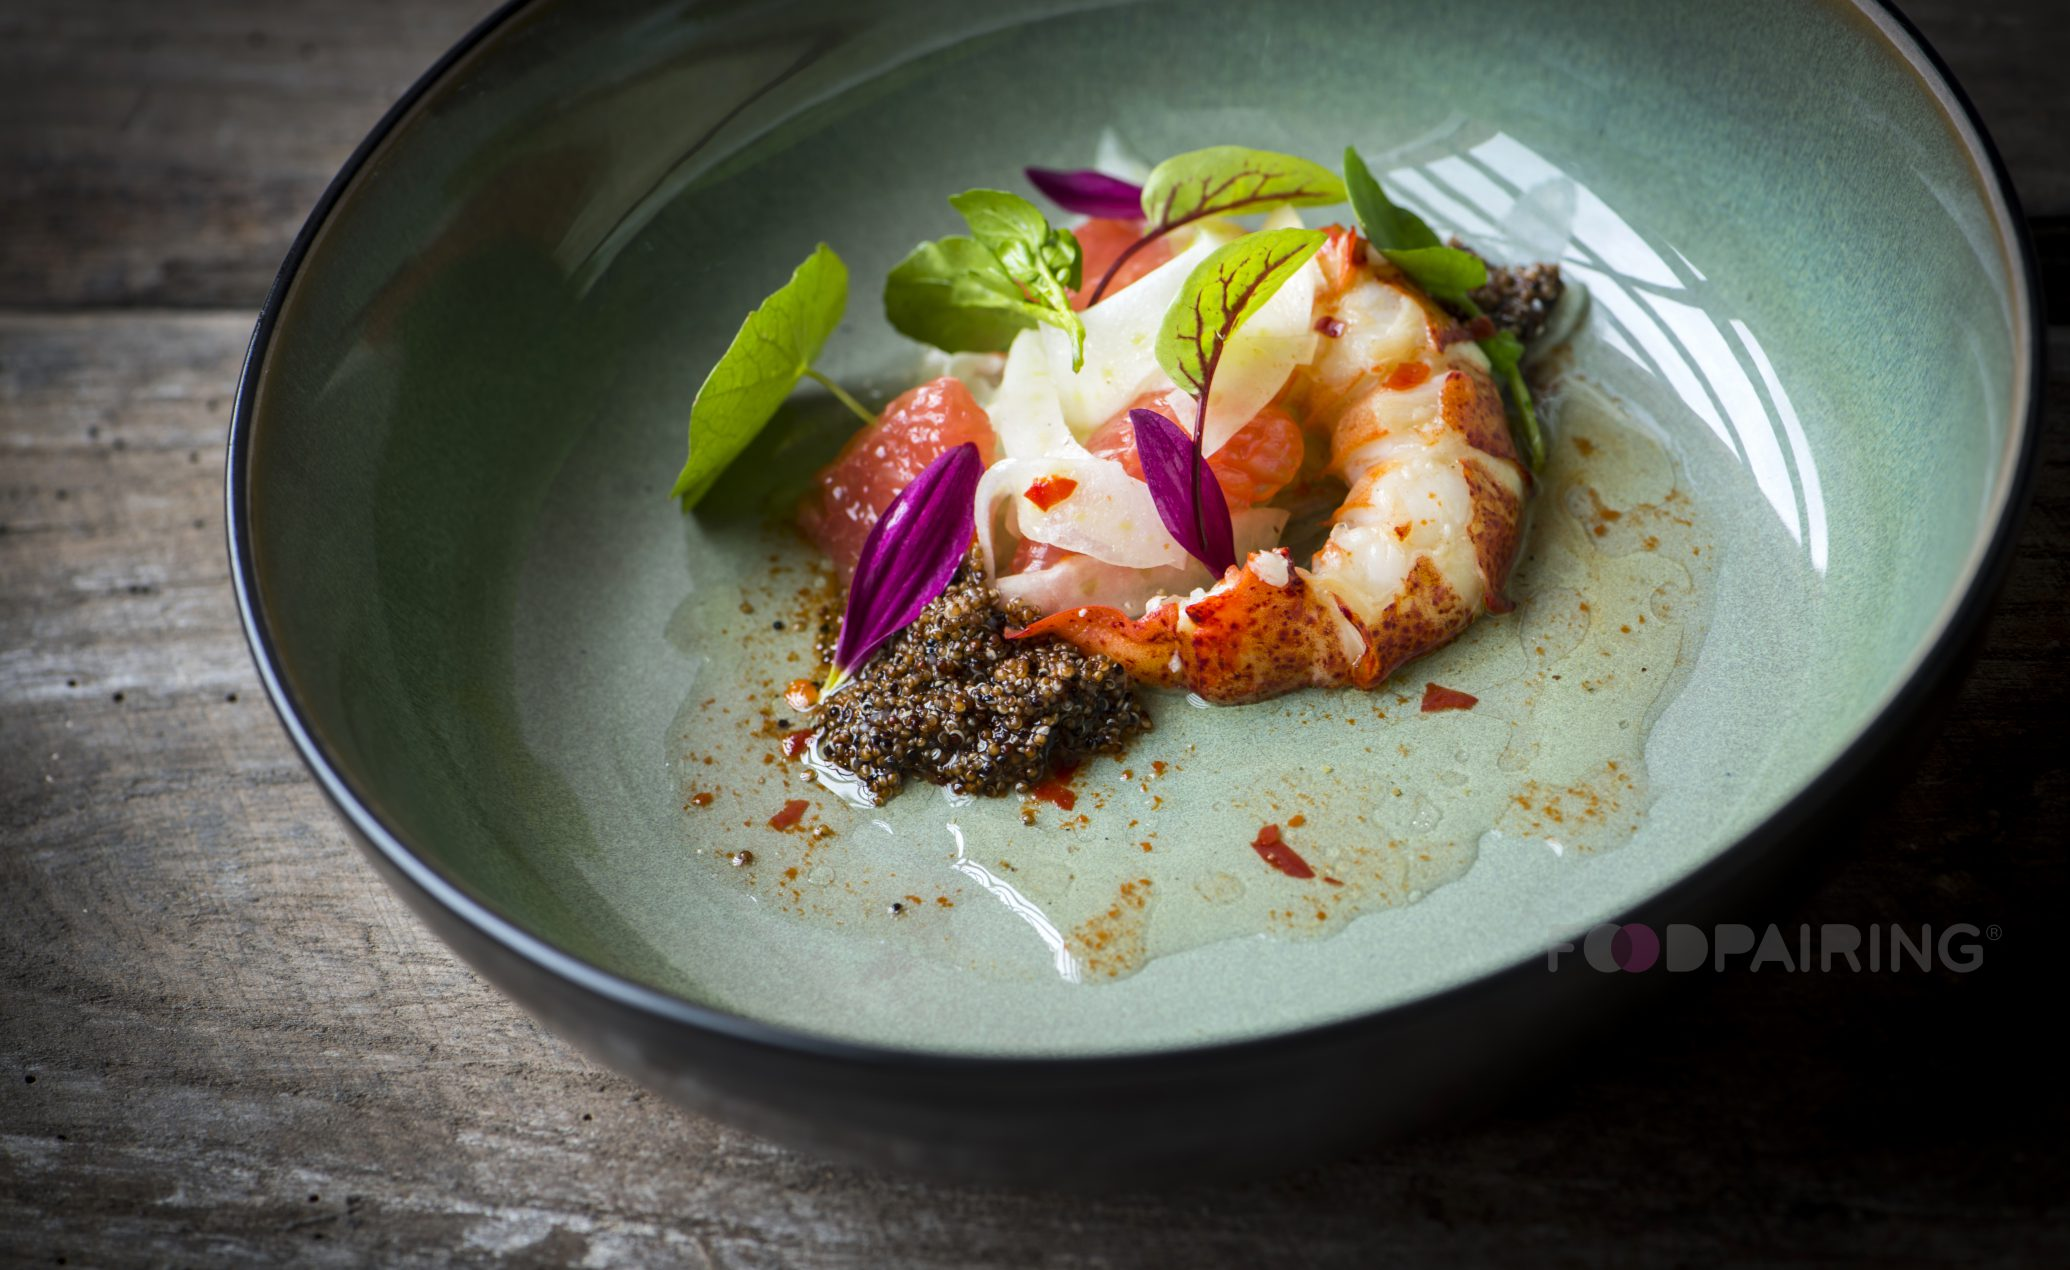 Lobster Salad with Spiced Pink Grapefruit, Peppers, Fennel and Quinoa | Foodpairing / blog